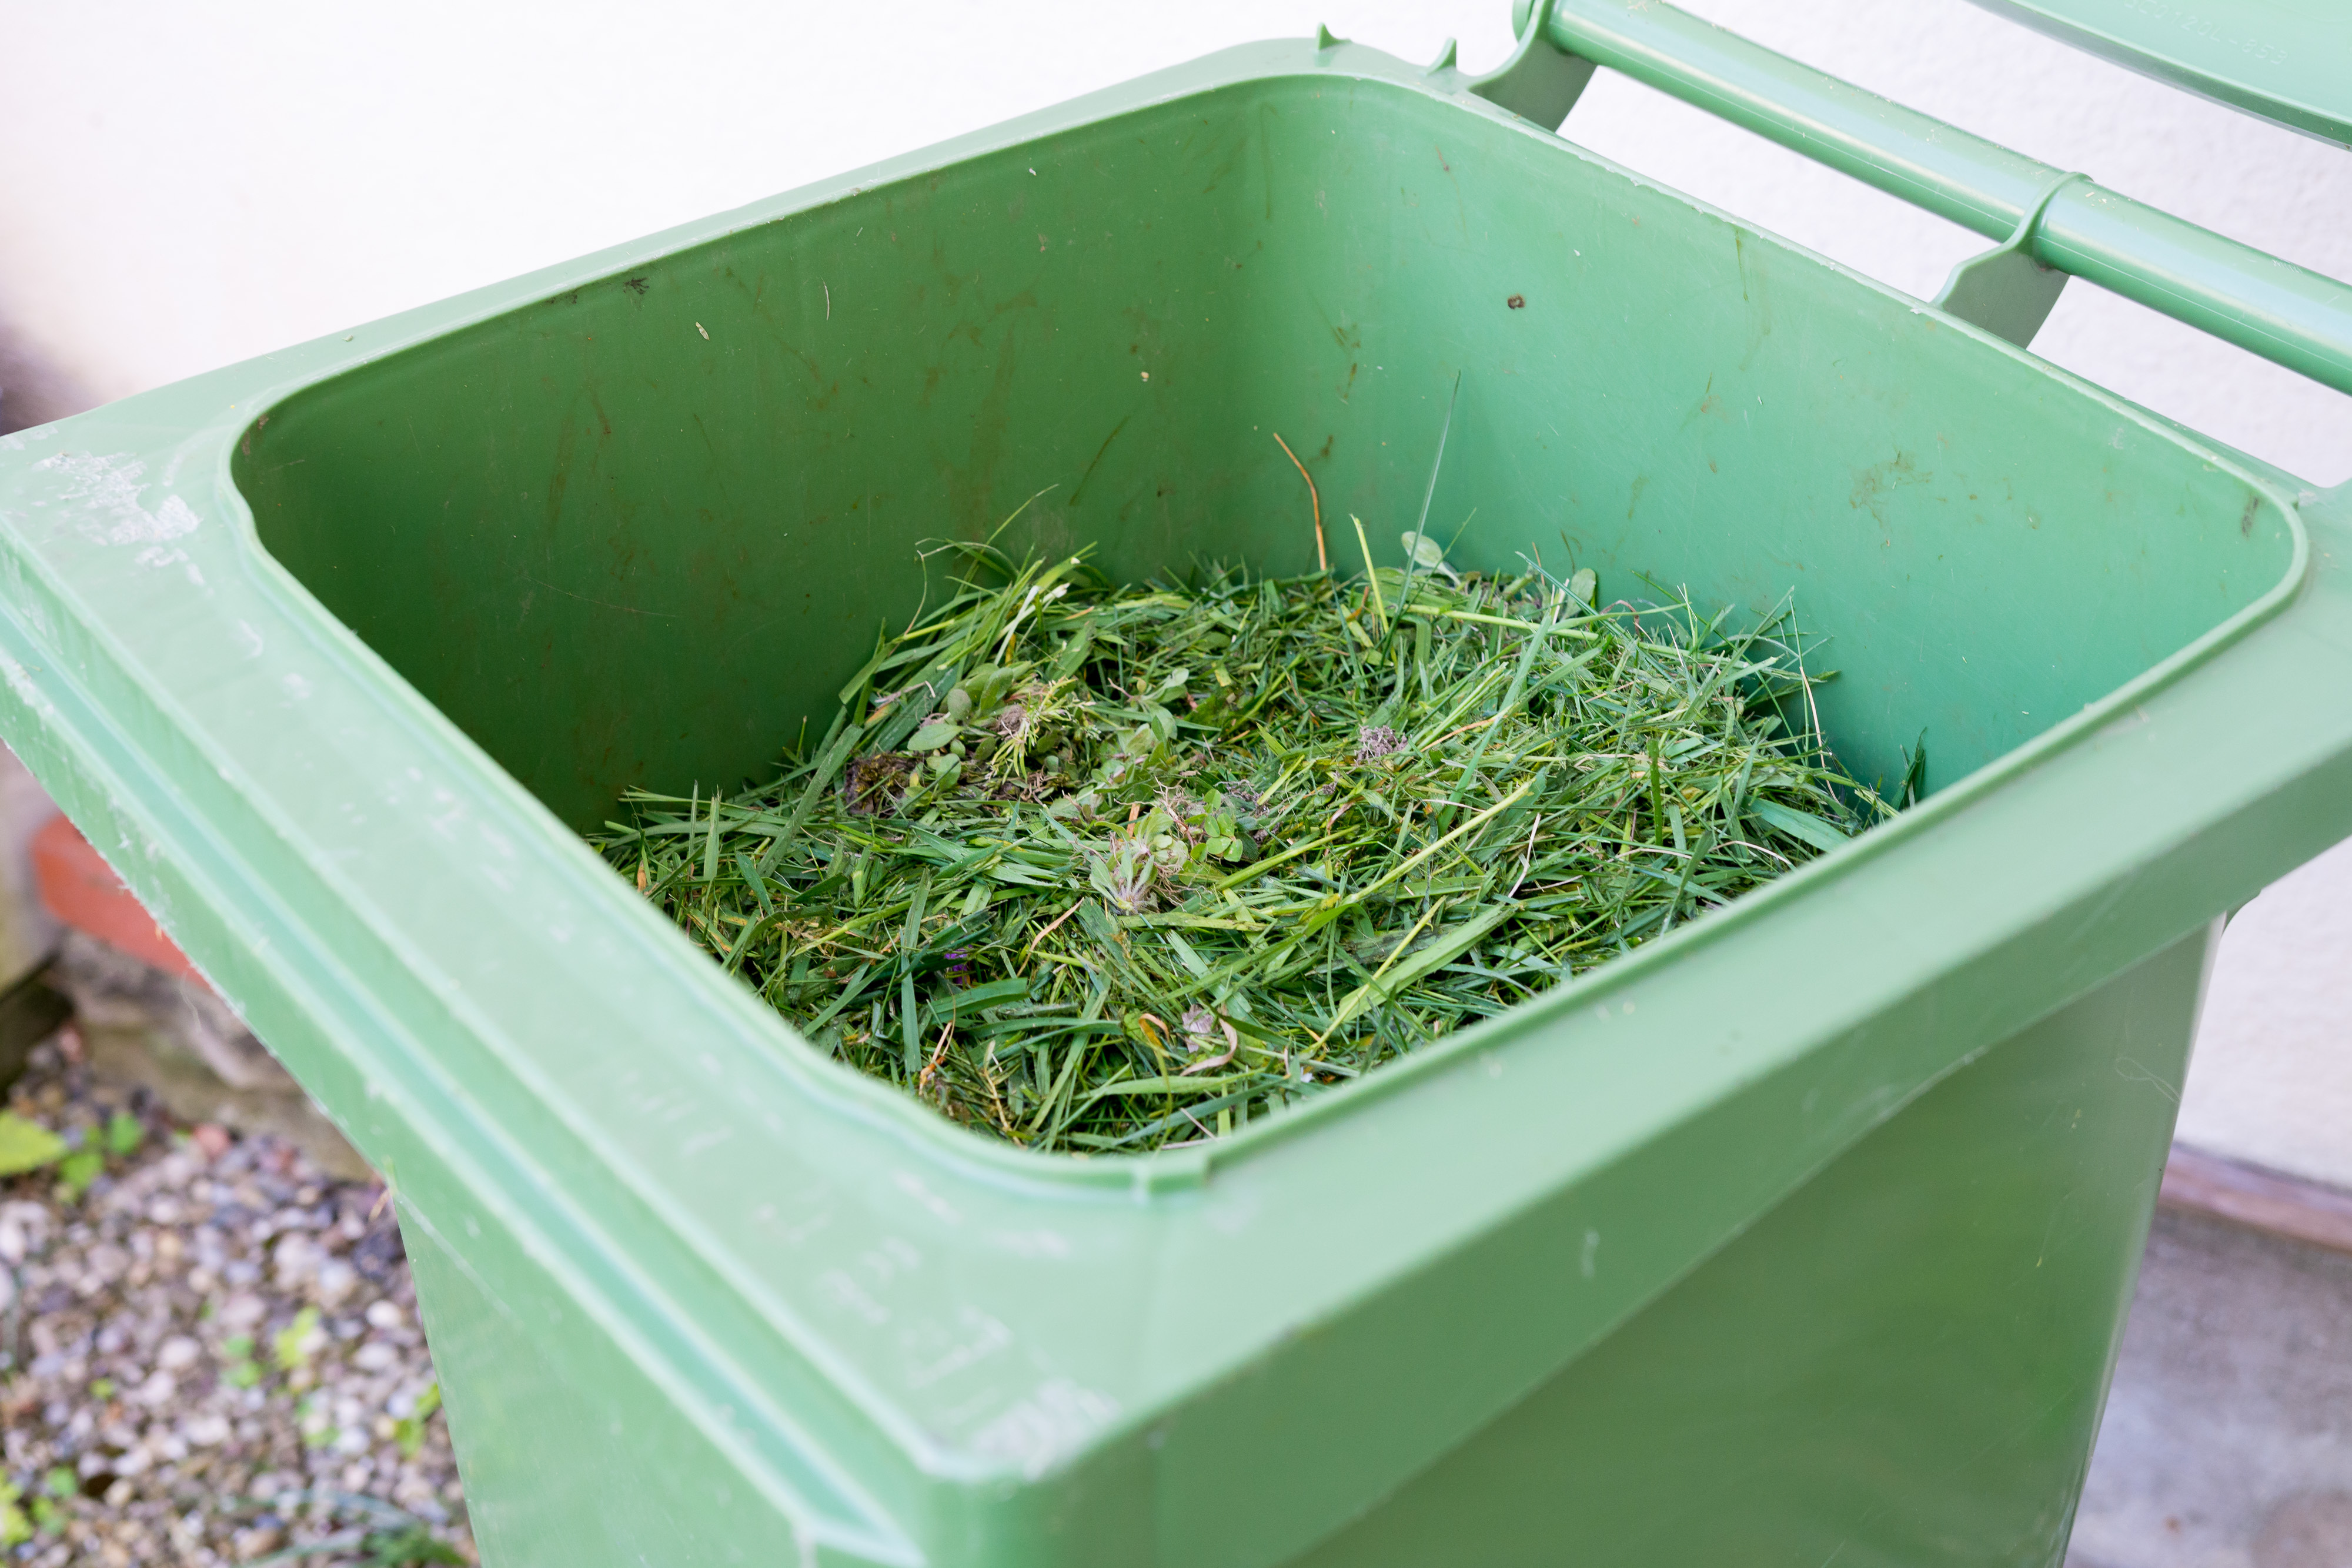 Using Green Dumpsters